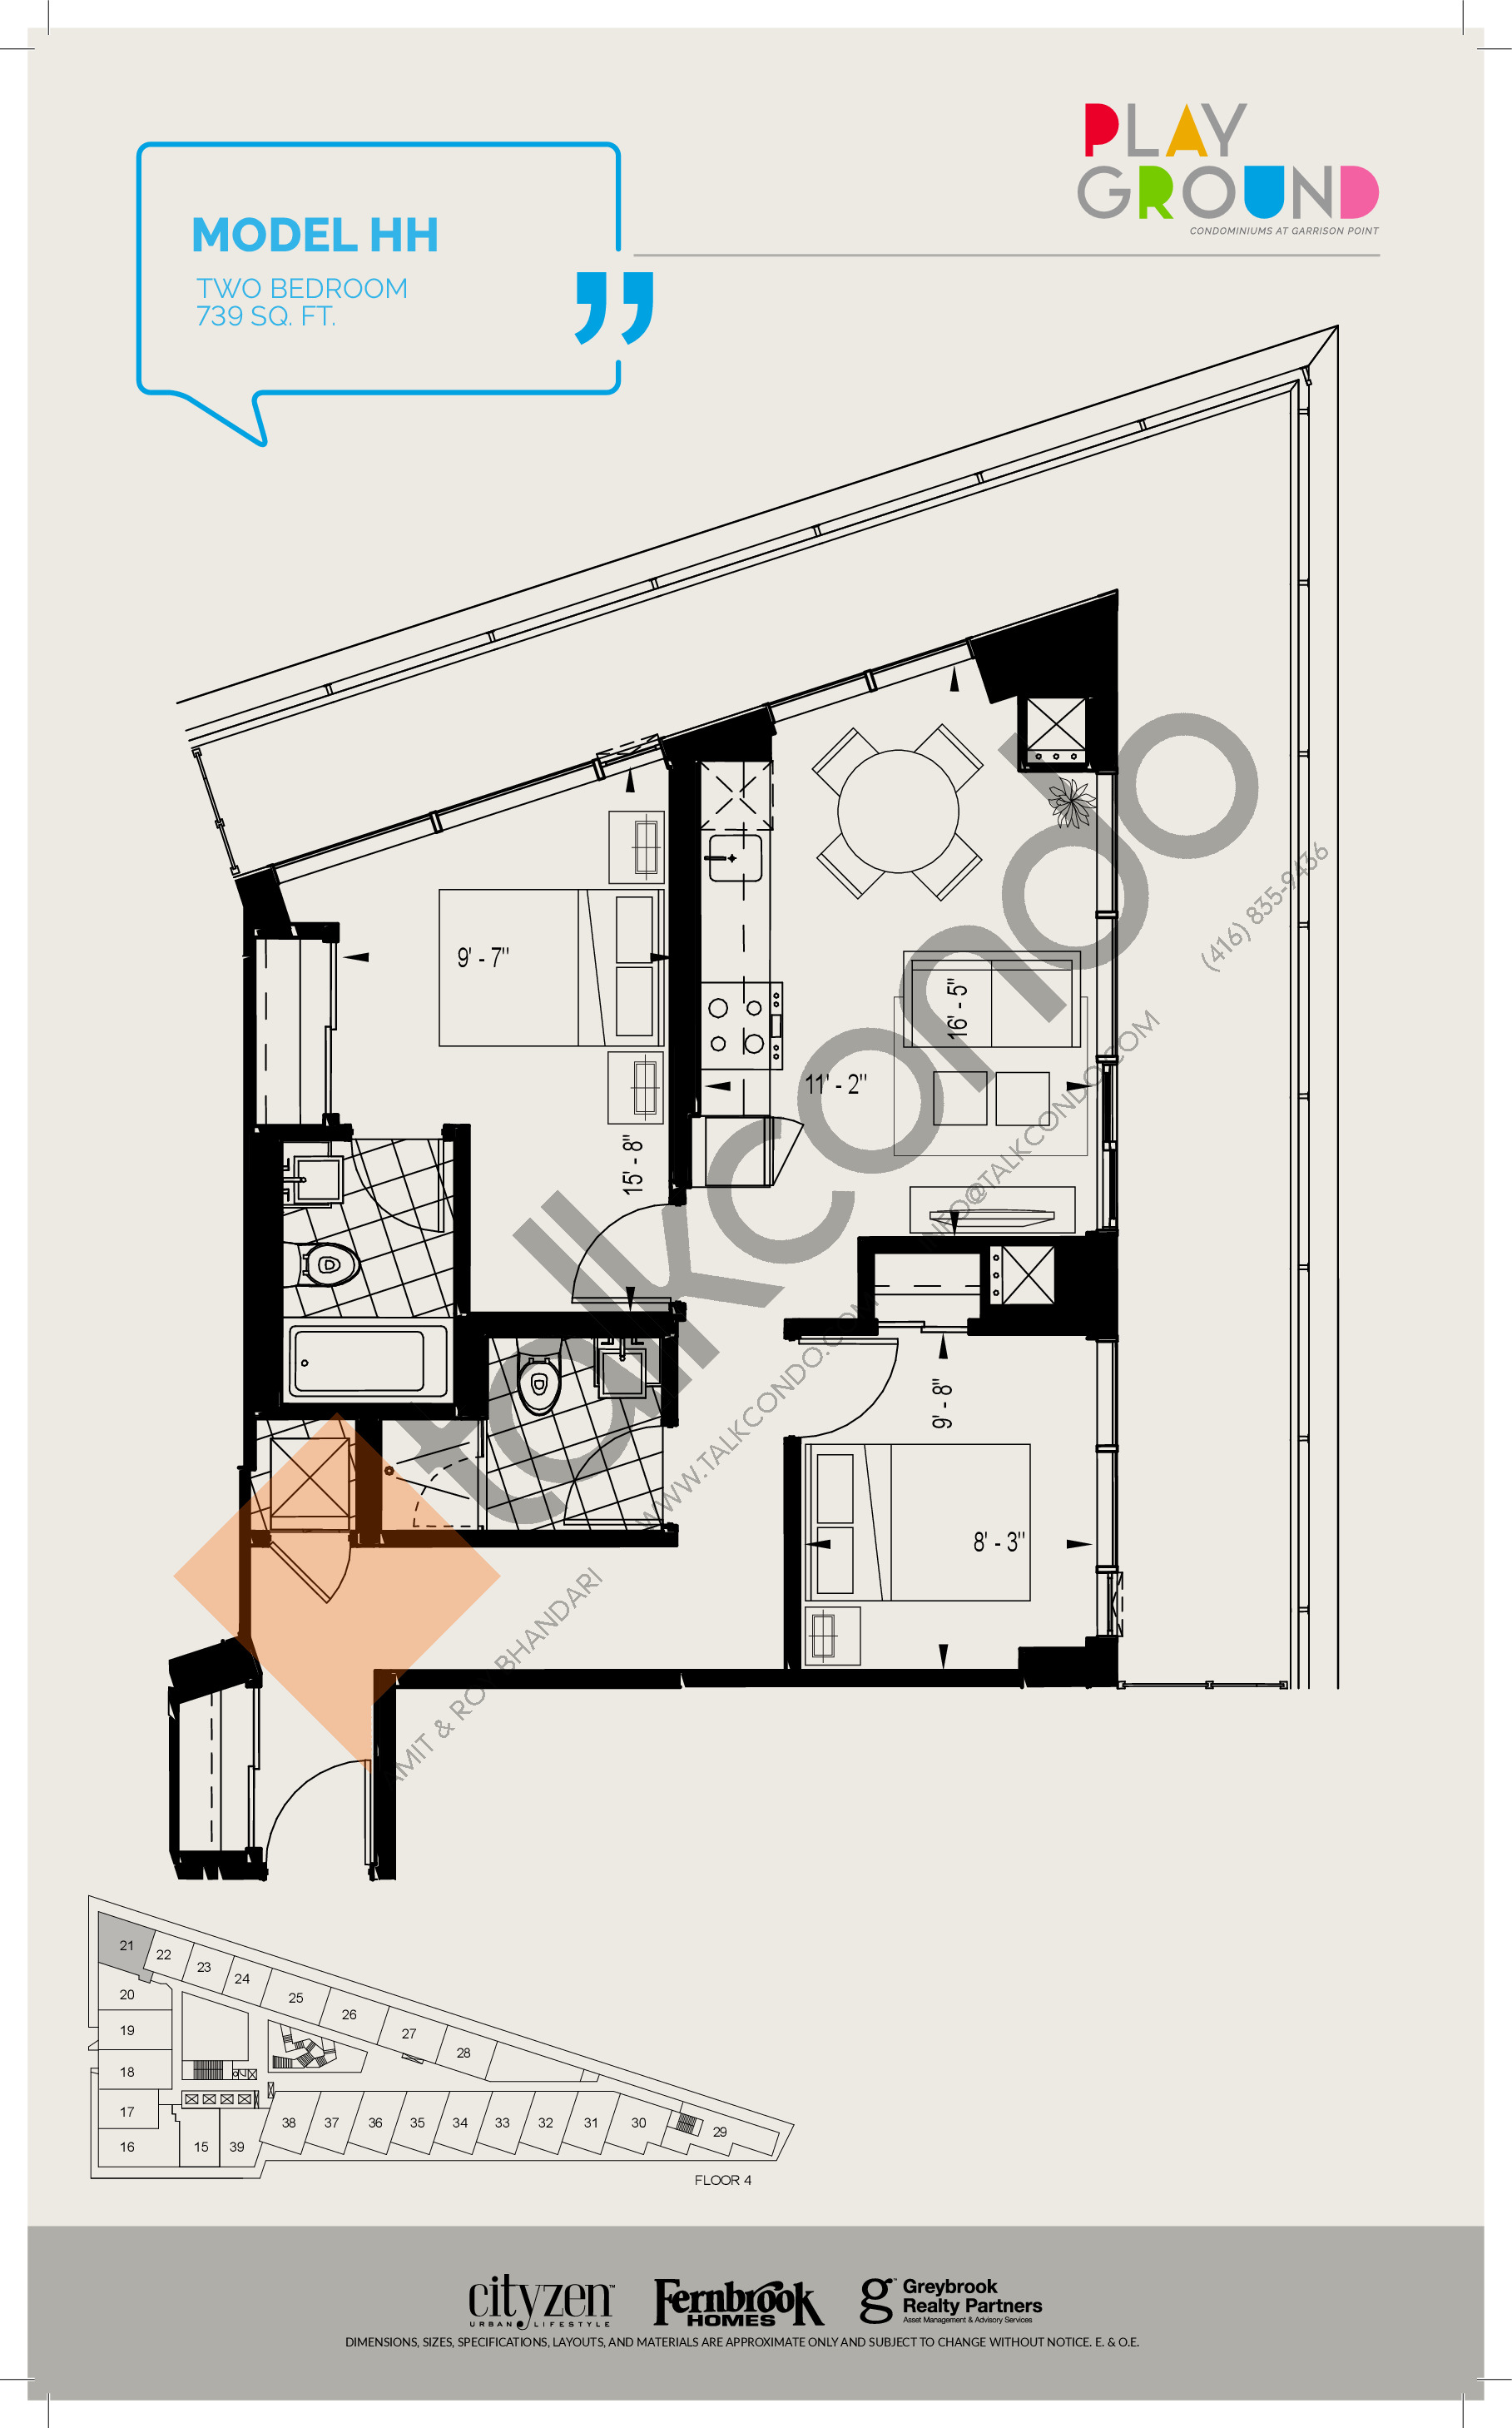 Model HH Floor Plan at Playground Condos at Garrison Point - 739 sq.ft